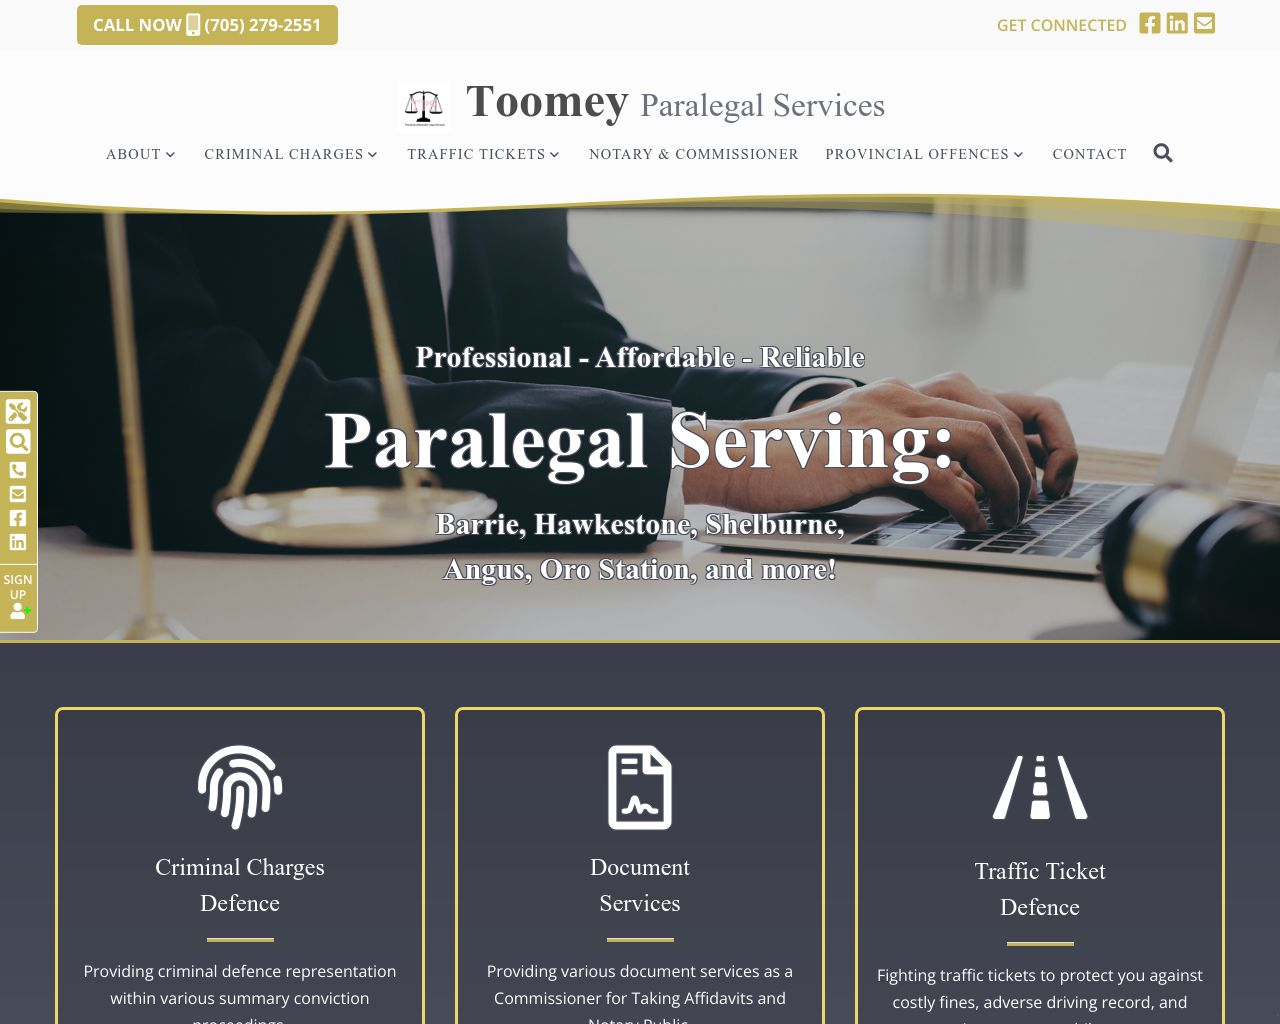 Website: Toomey Paralegal Services